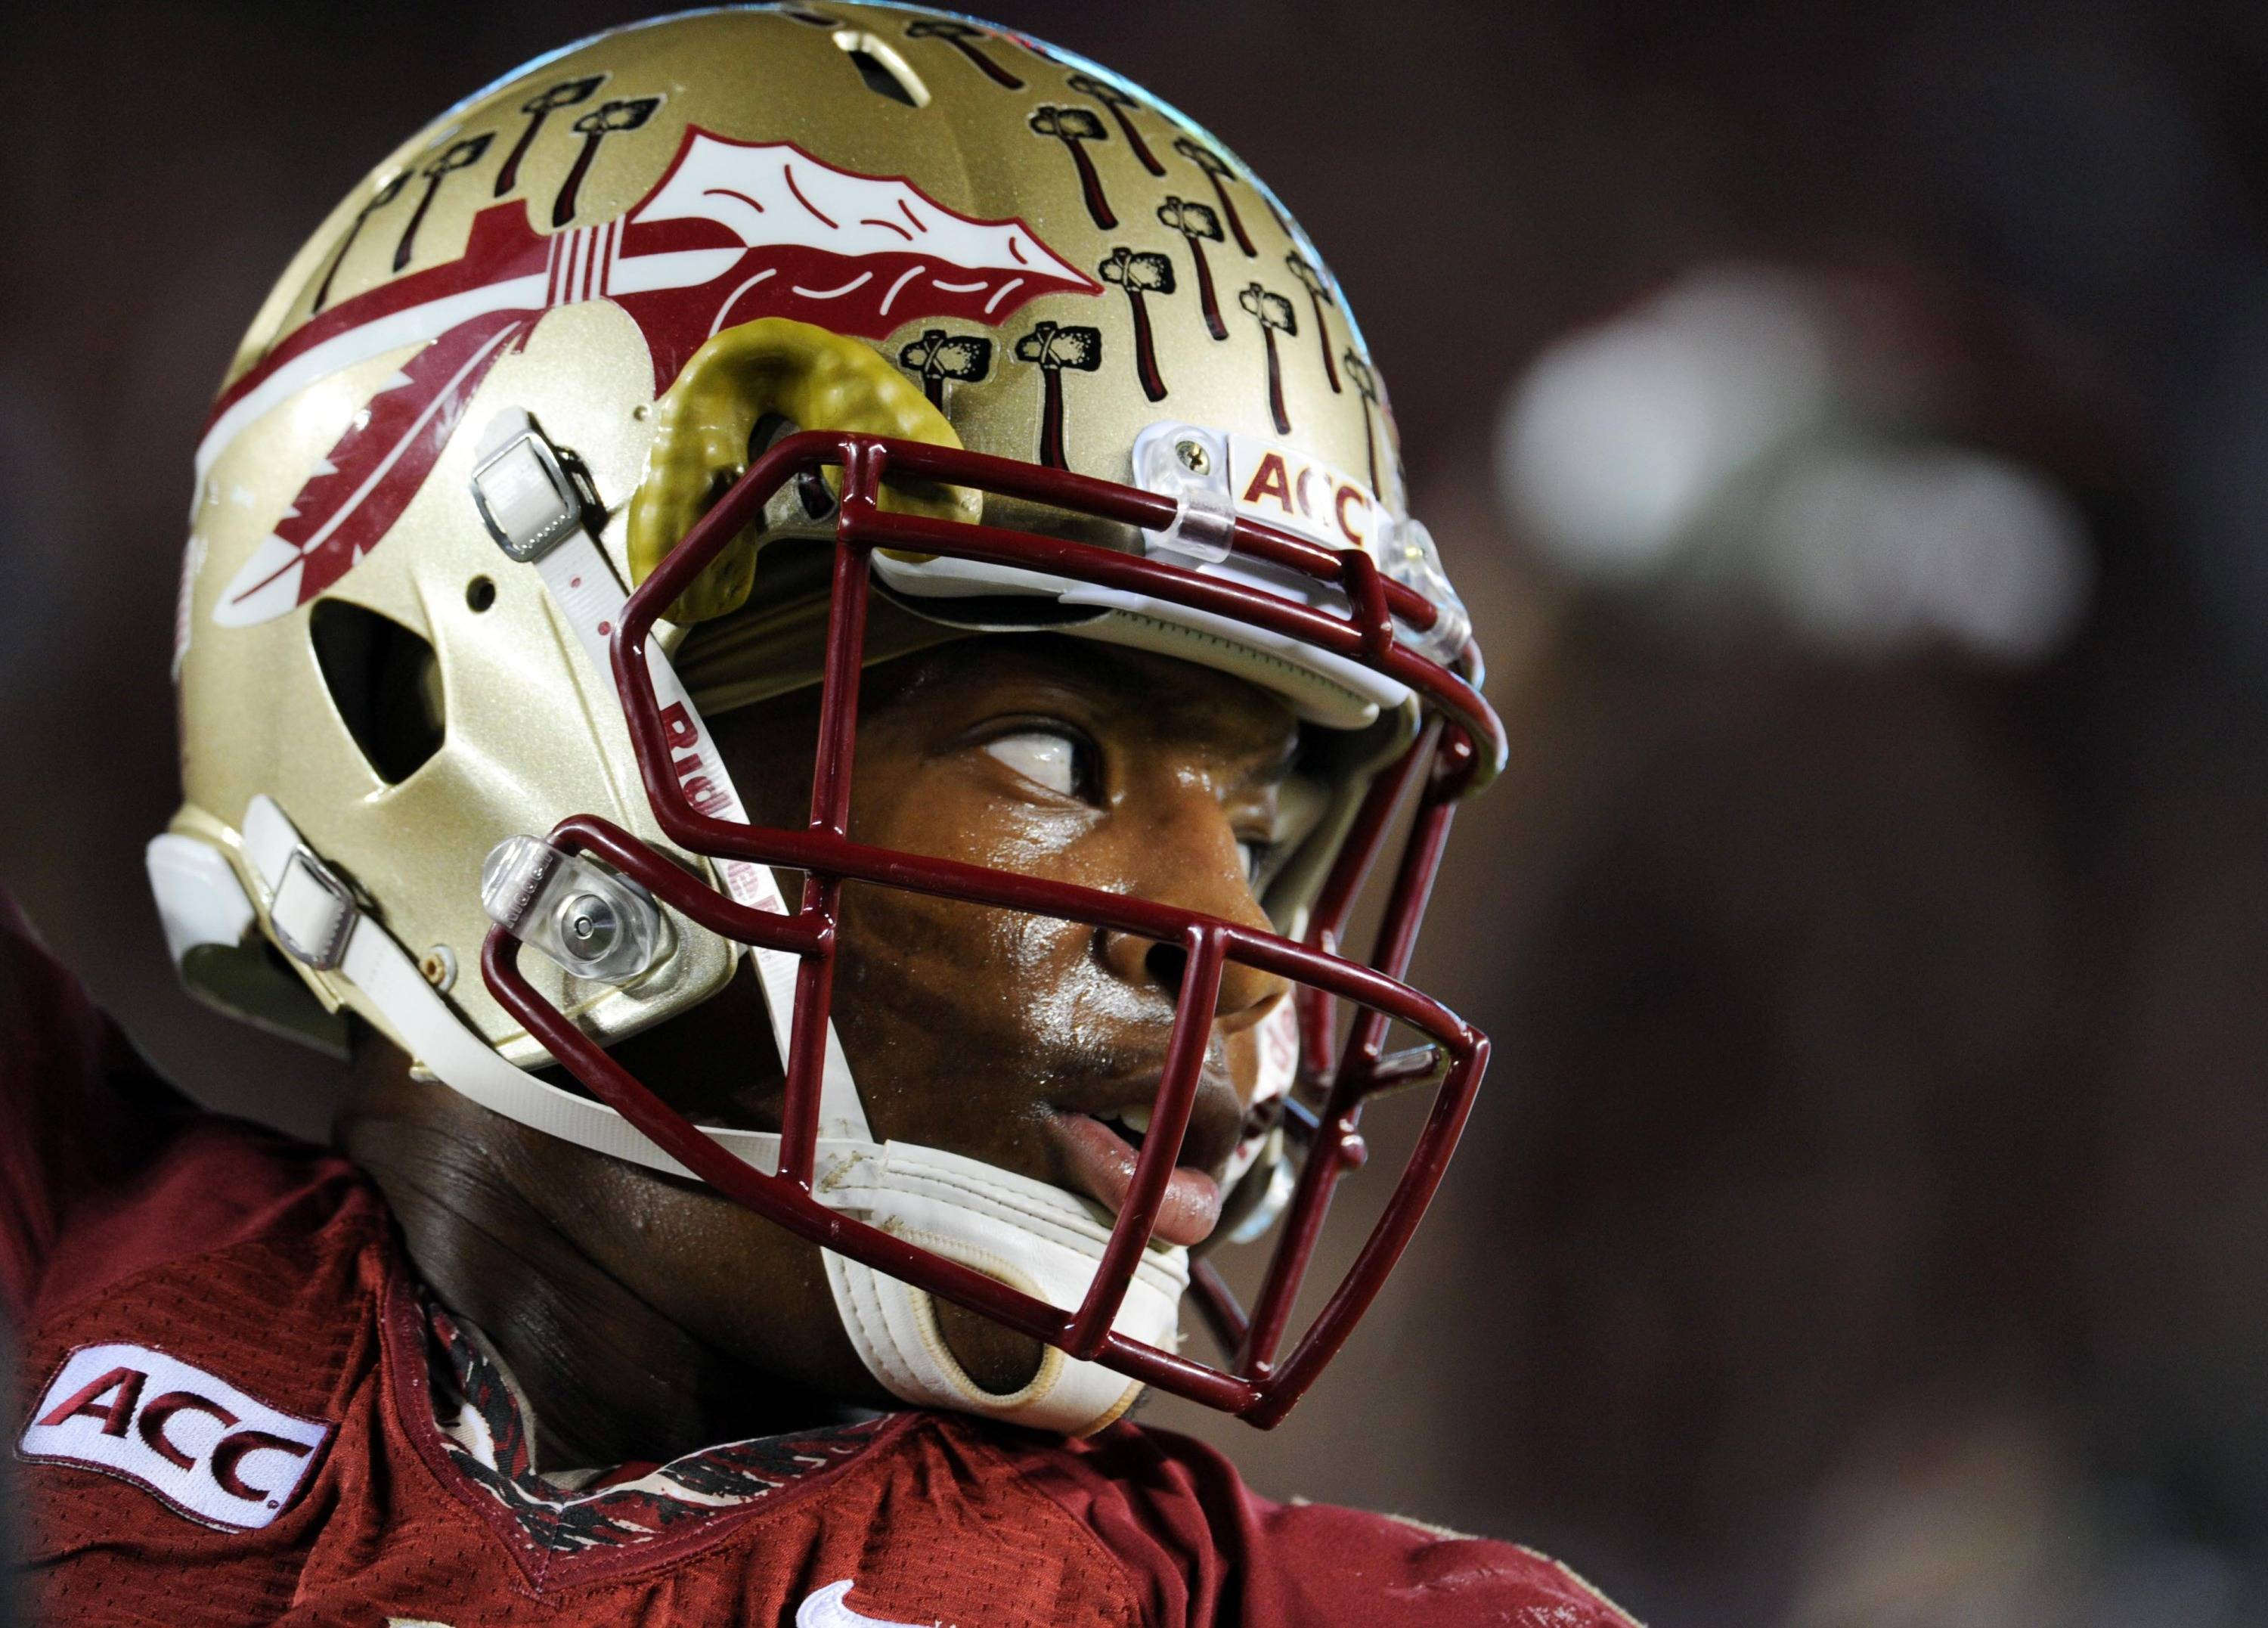 Florida State Seminoles quarterback Jameis Winston (5) before the start of the game against the Miami Hurricanes at Doak Campbell Stadium. Mandatory Credit: Melina Vastola-USA TODAY Sports